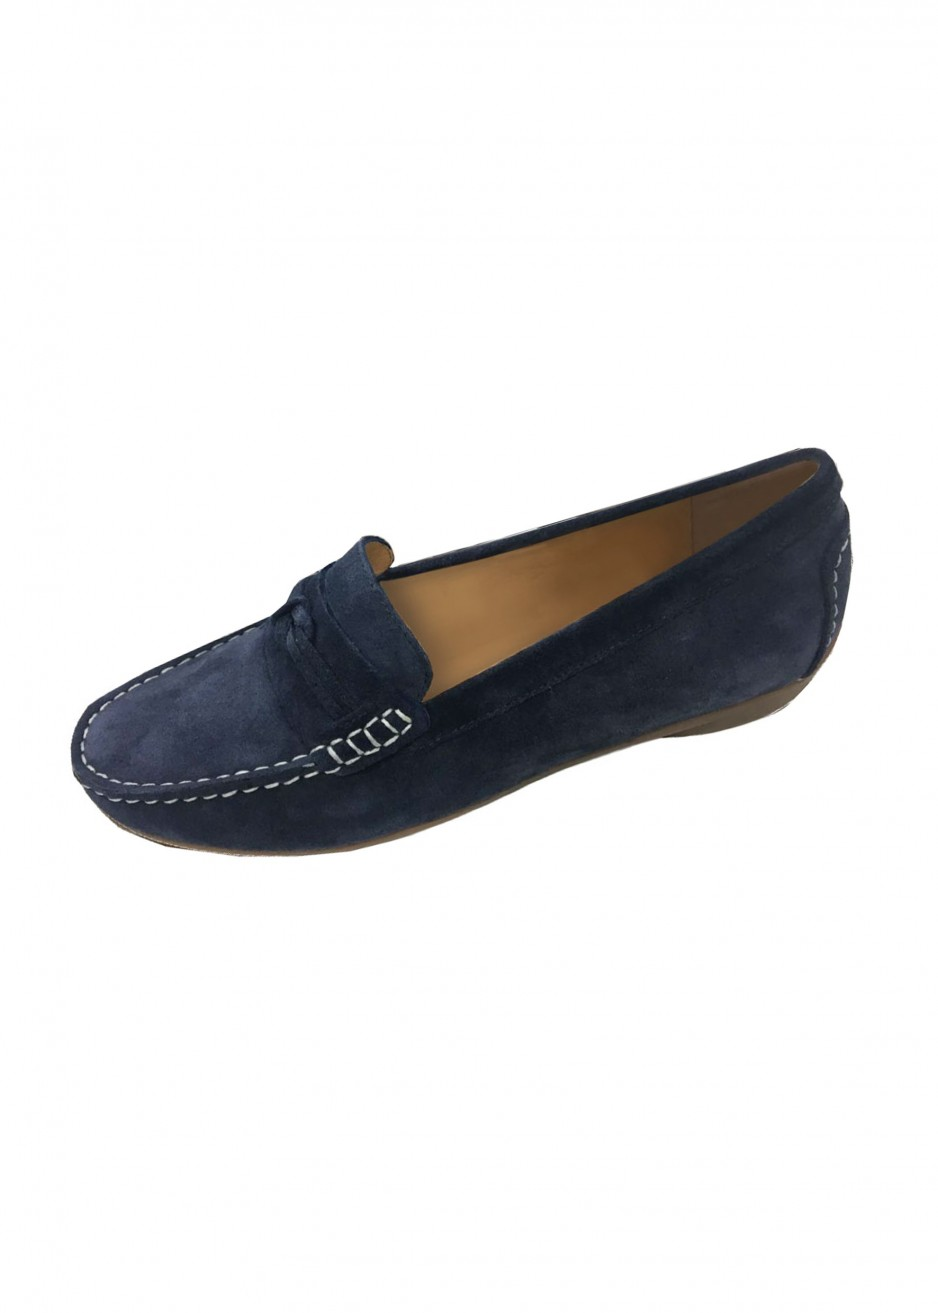 BYRON - WOMENS SLIP ON